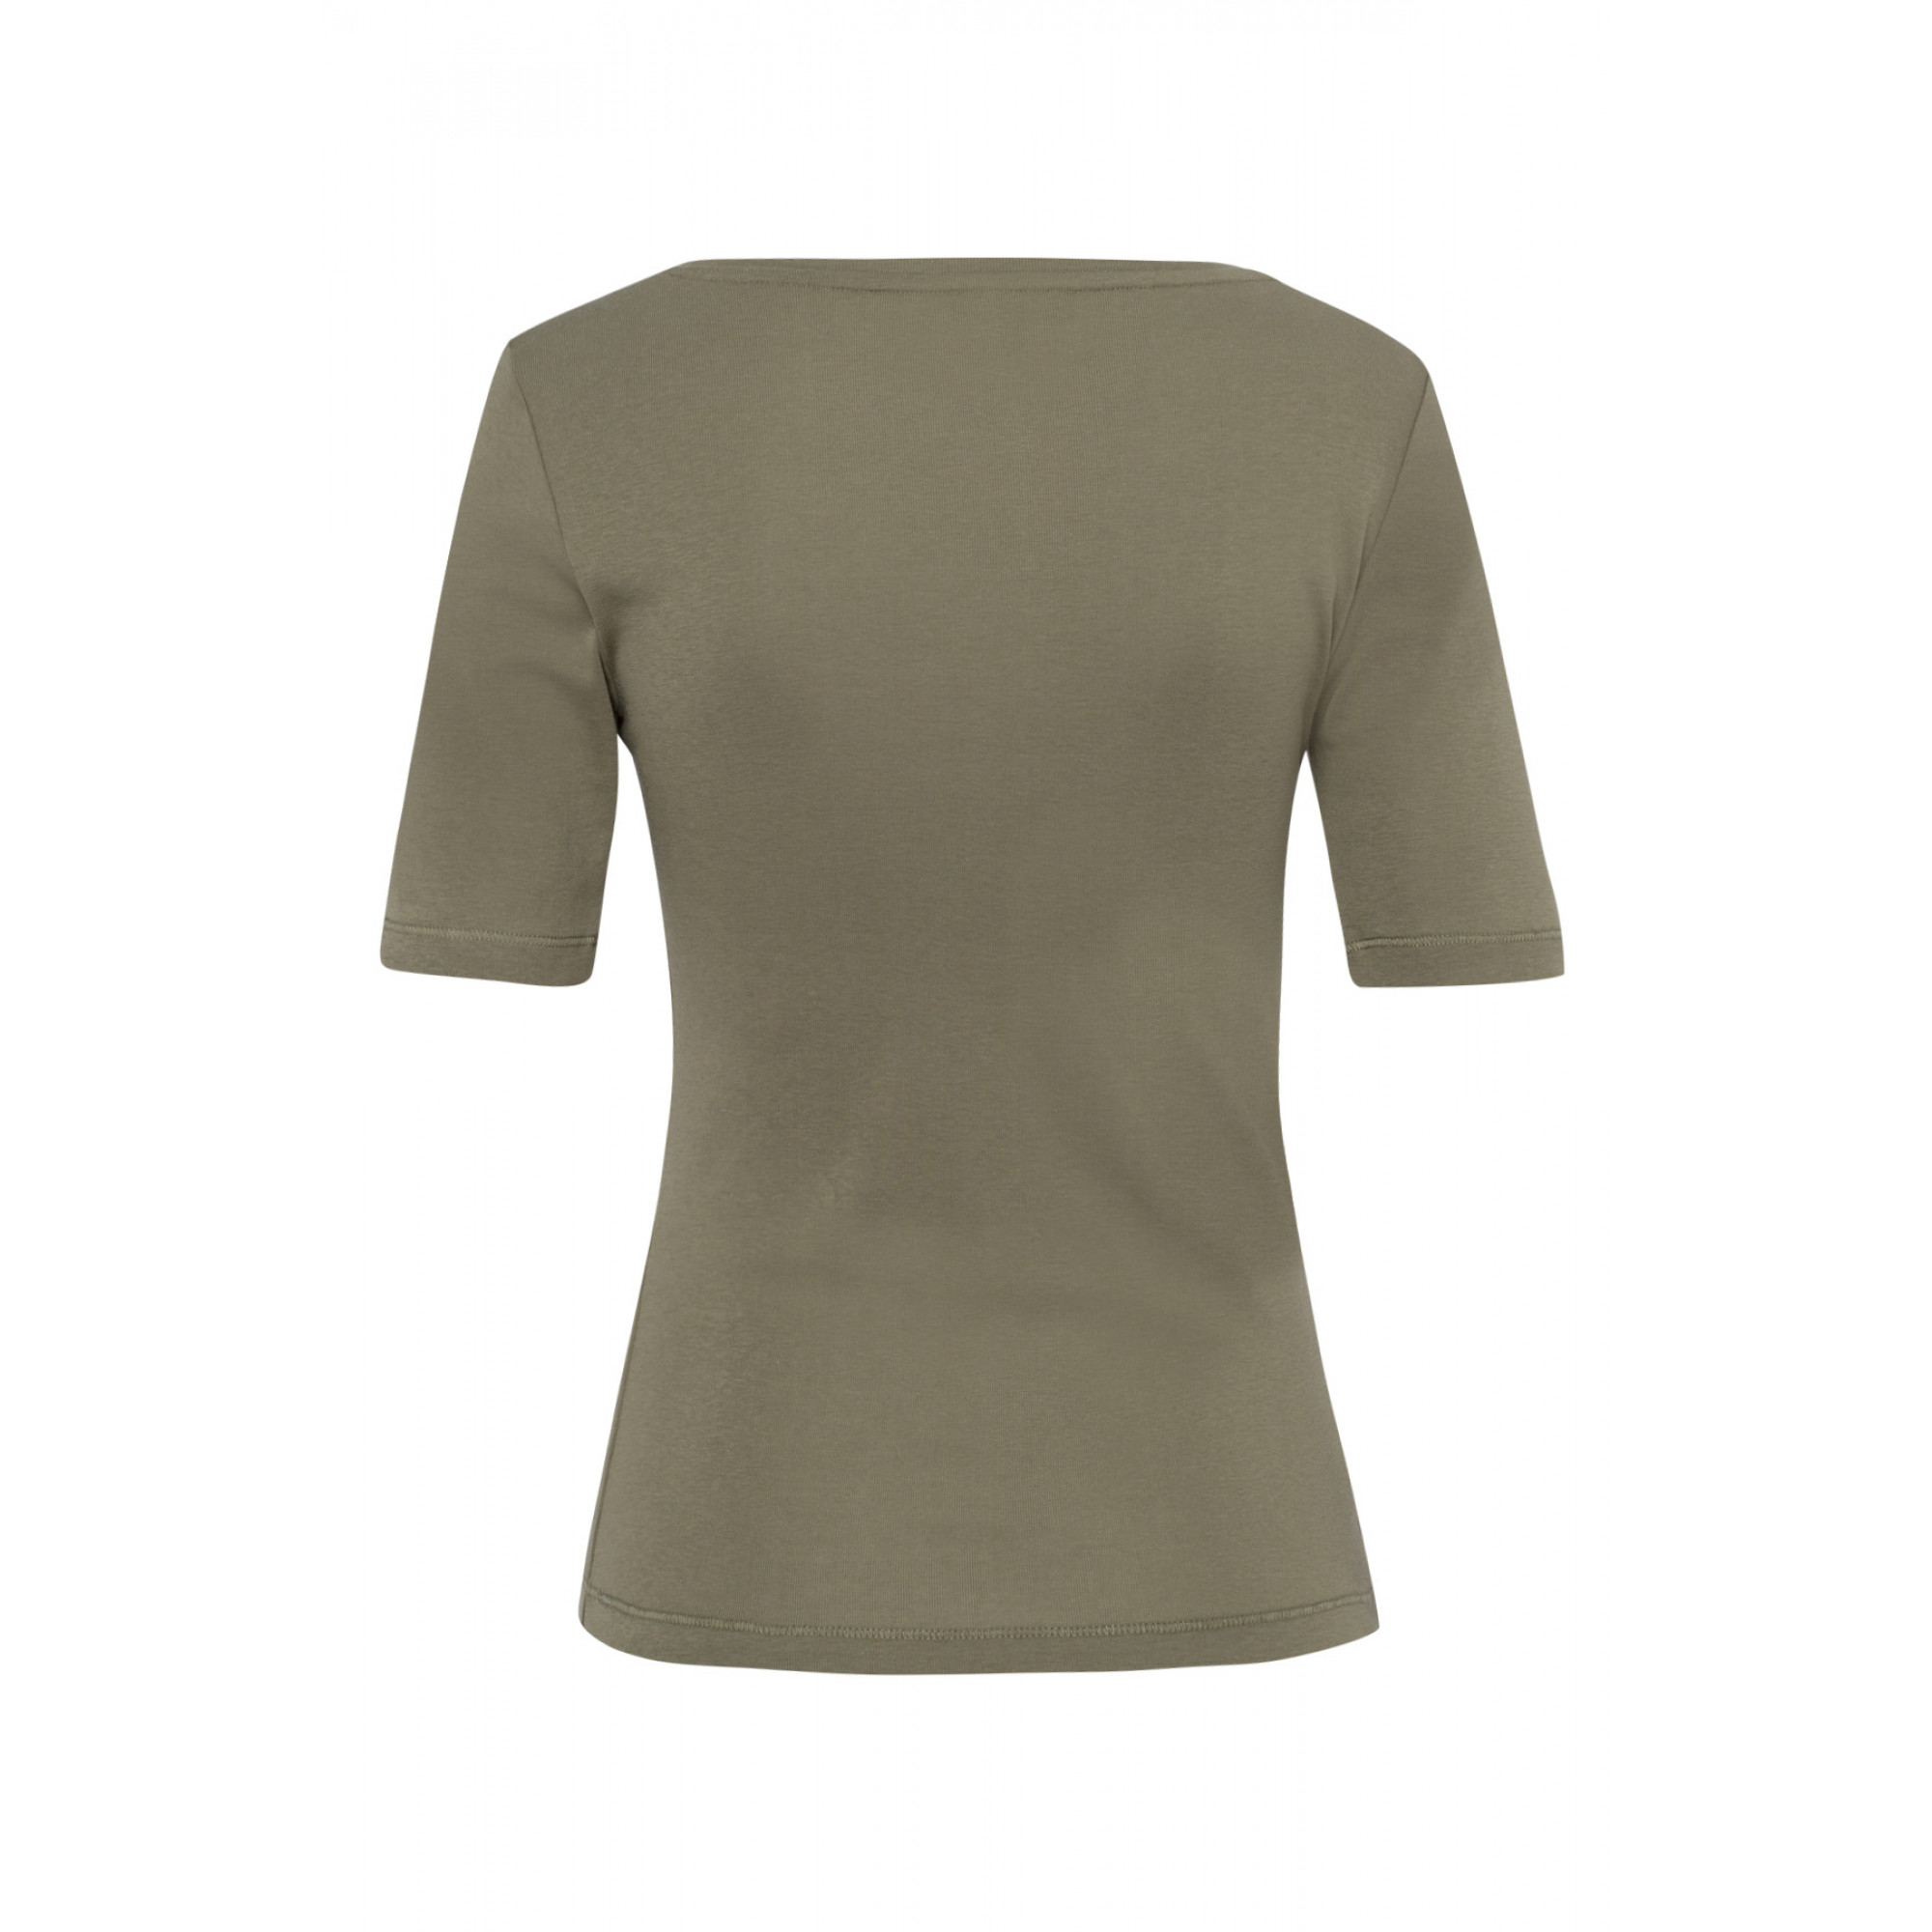 Baumwoll-T-Shirt, new khaki 01950008-0666 2